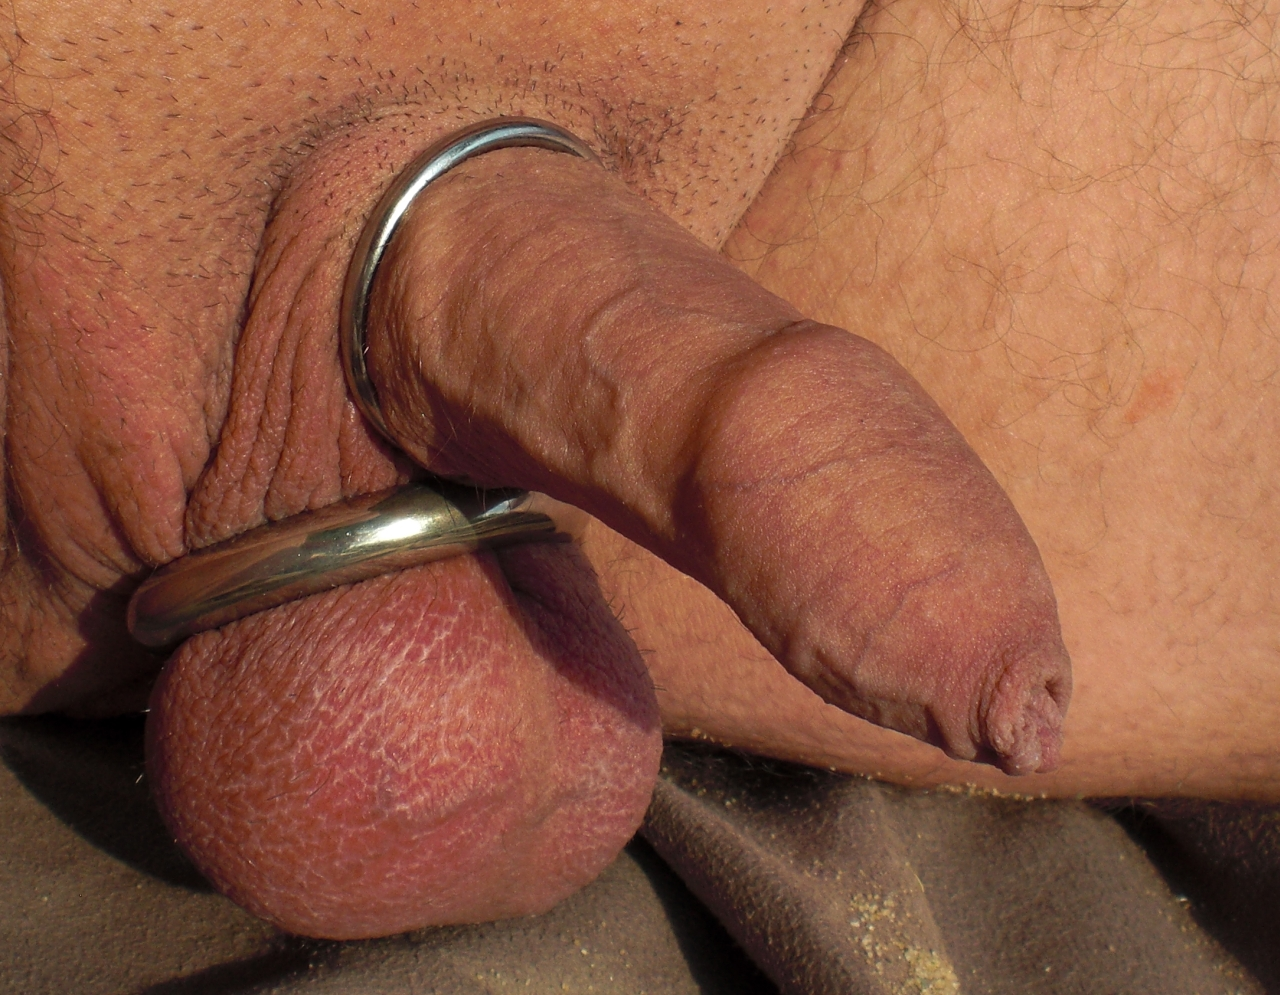 Jpg of cock and balls